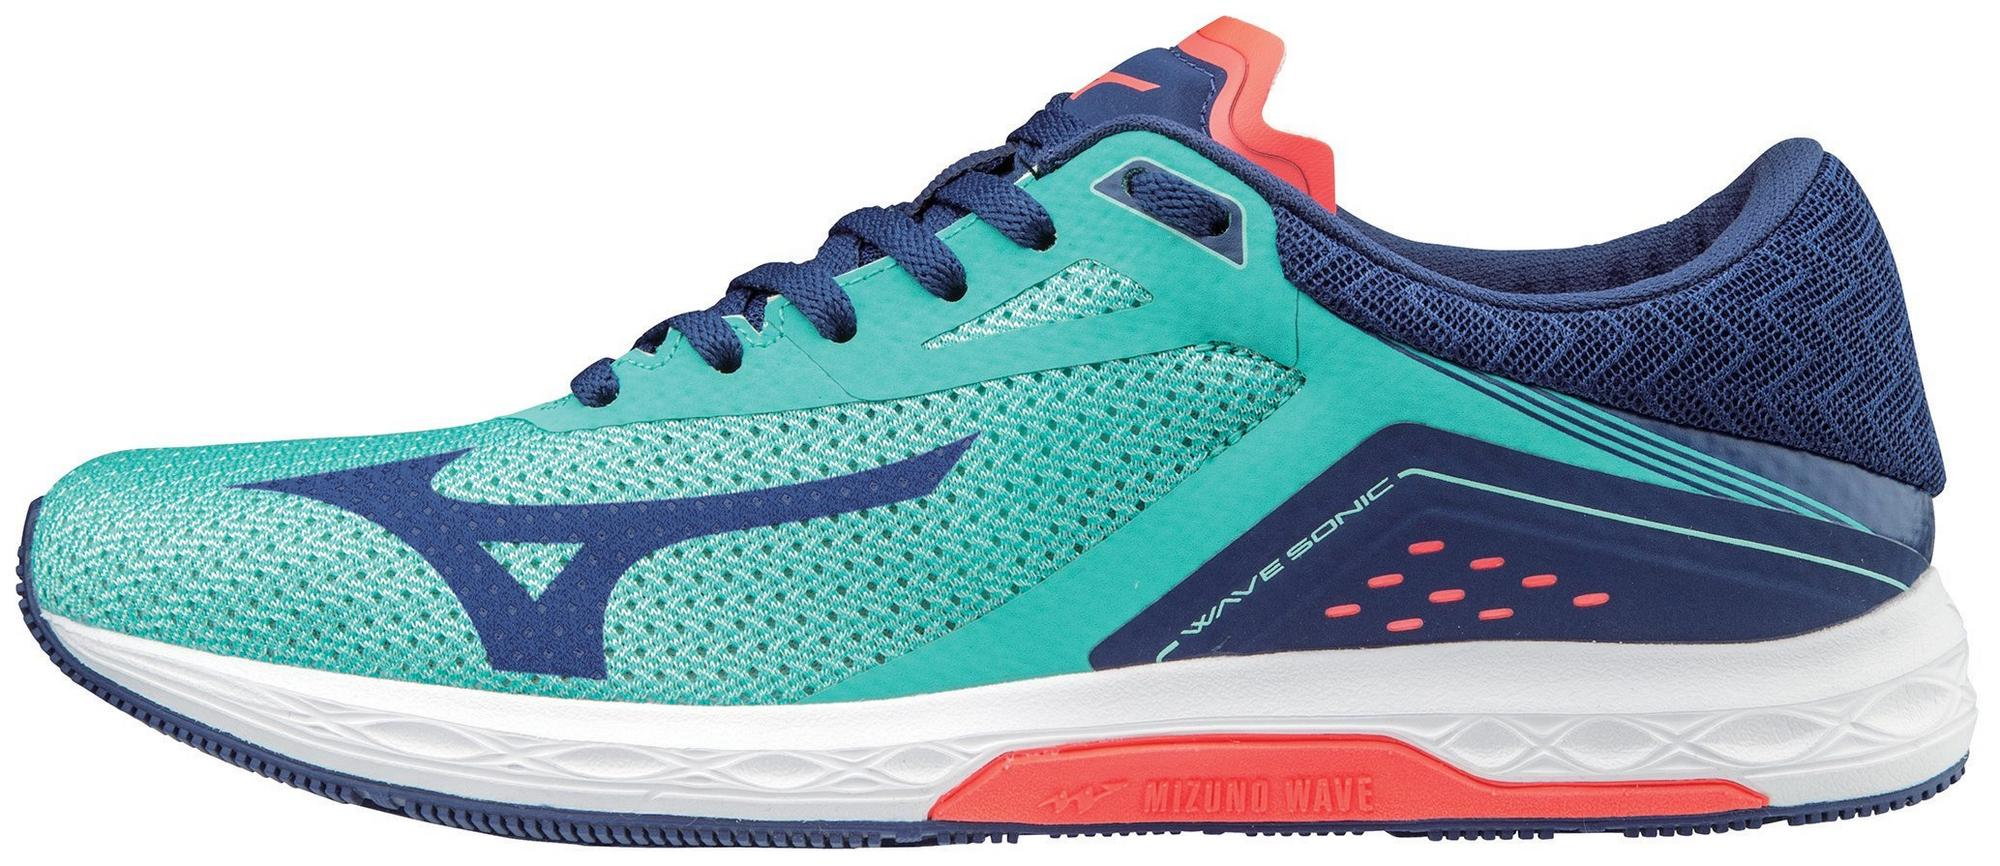 Women's Mizuno Wave Sonic - women's running shoes - Sports 4